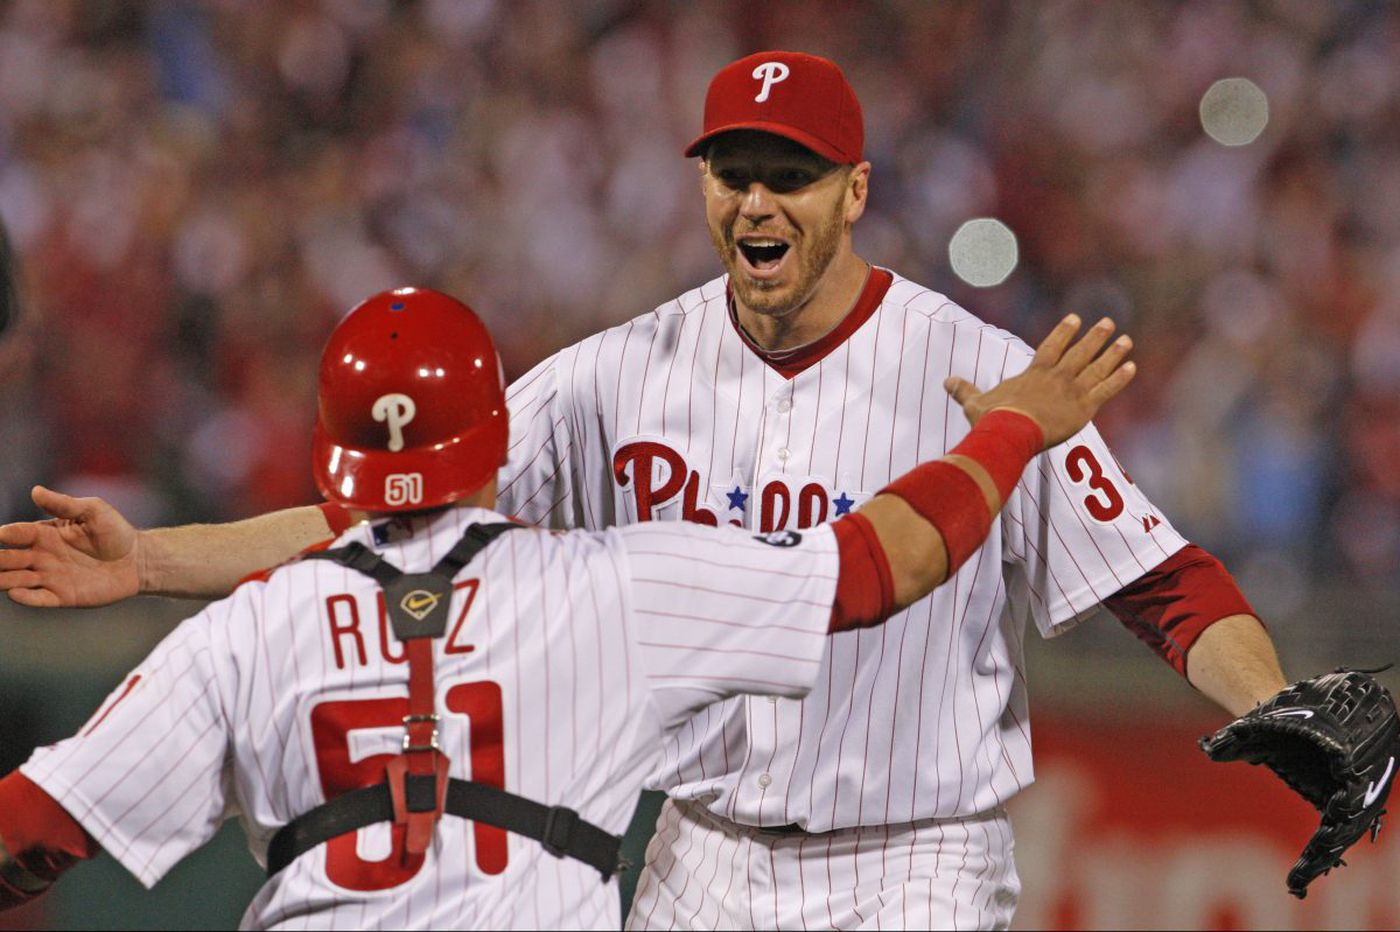 Phillies adding Roy Halladay to Wall of Fame